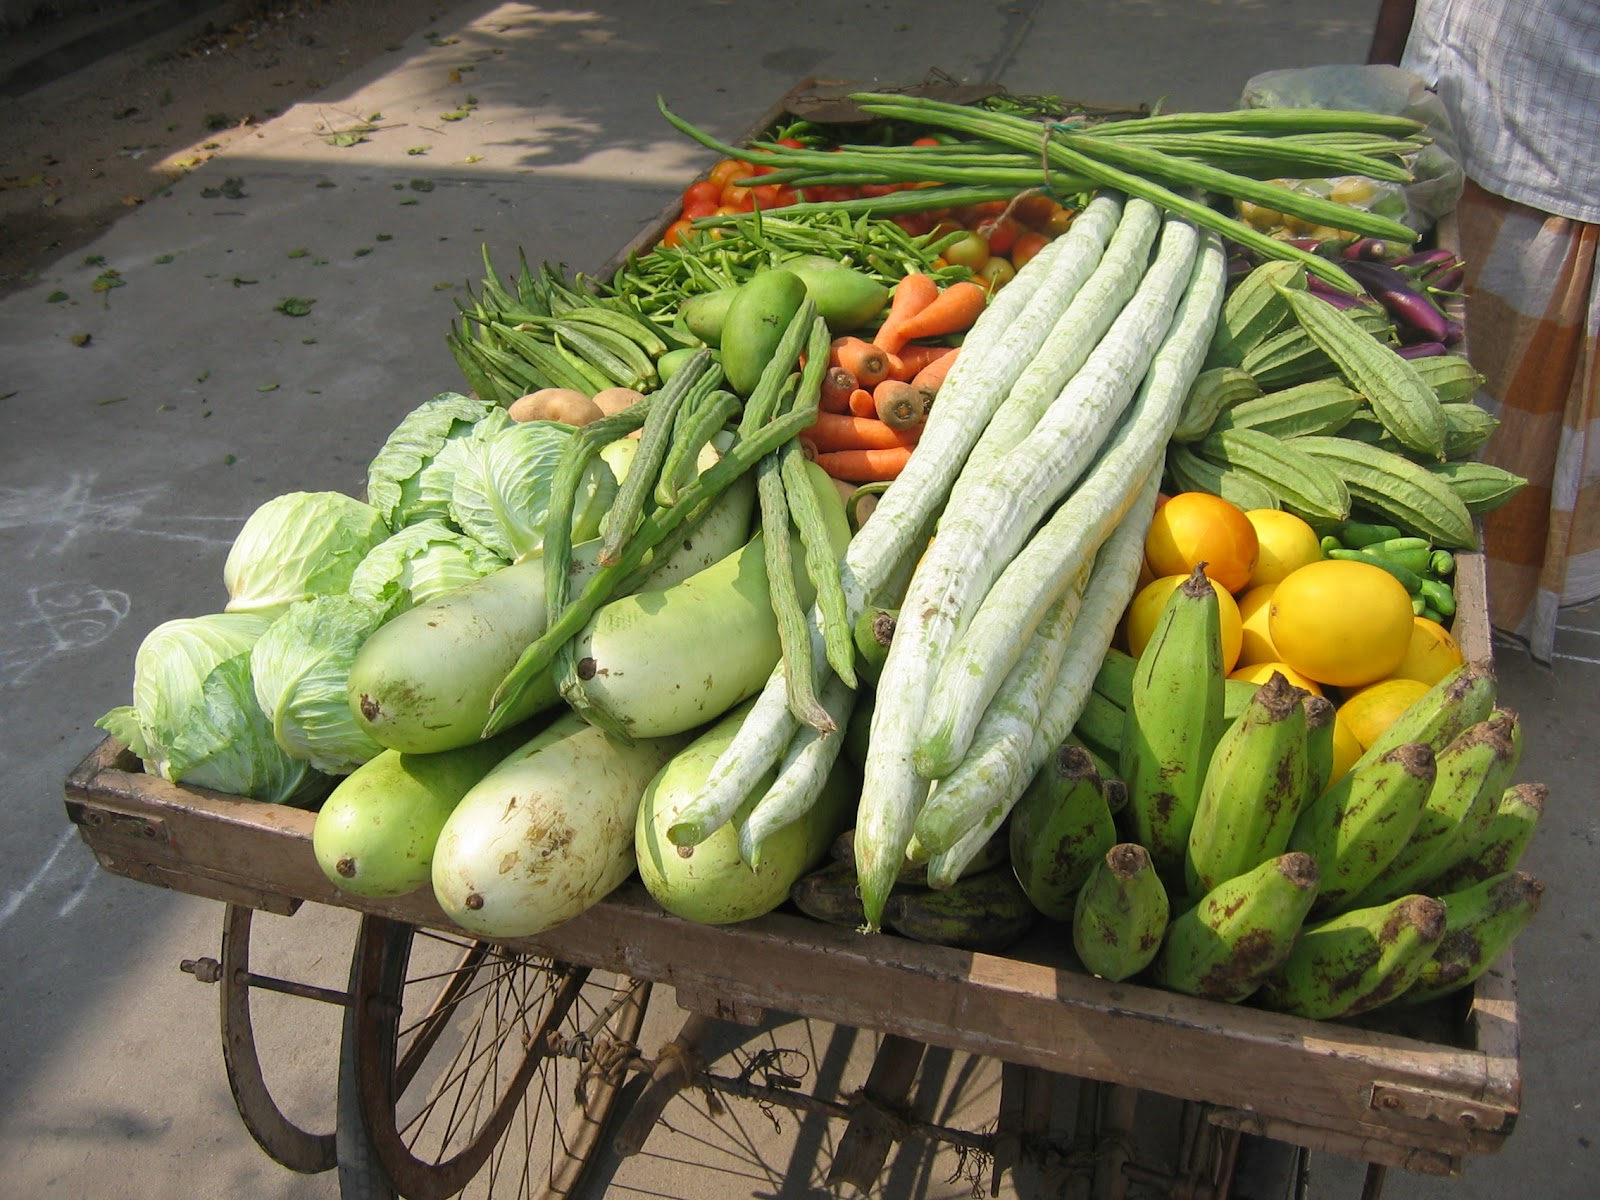 Going organic ~ Why You Should Swap To Using Organic Produce